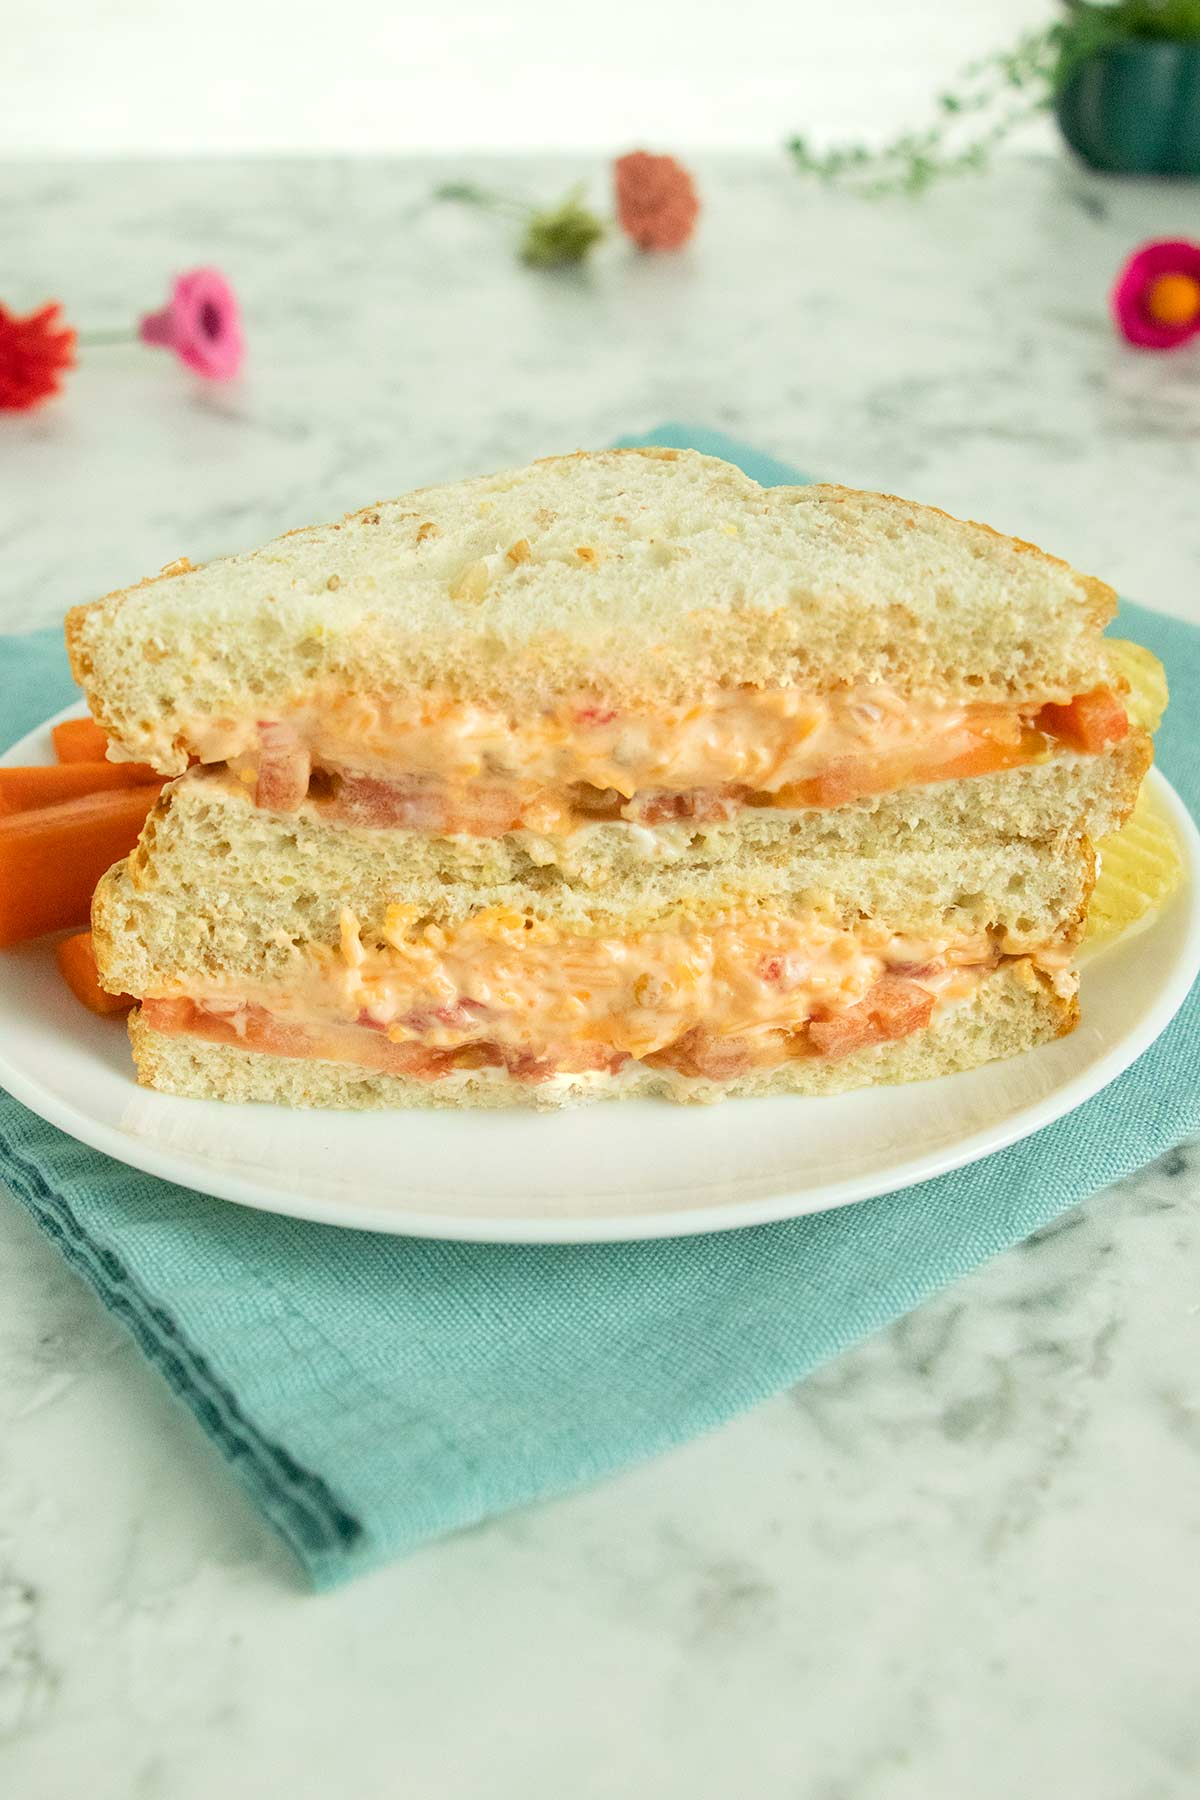 vegan pimento cheese sandwich on a white plate with carrots and chips on the side